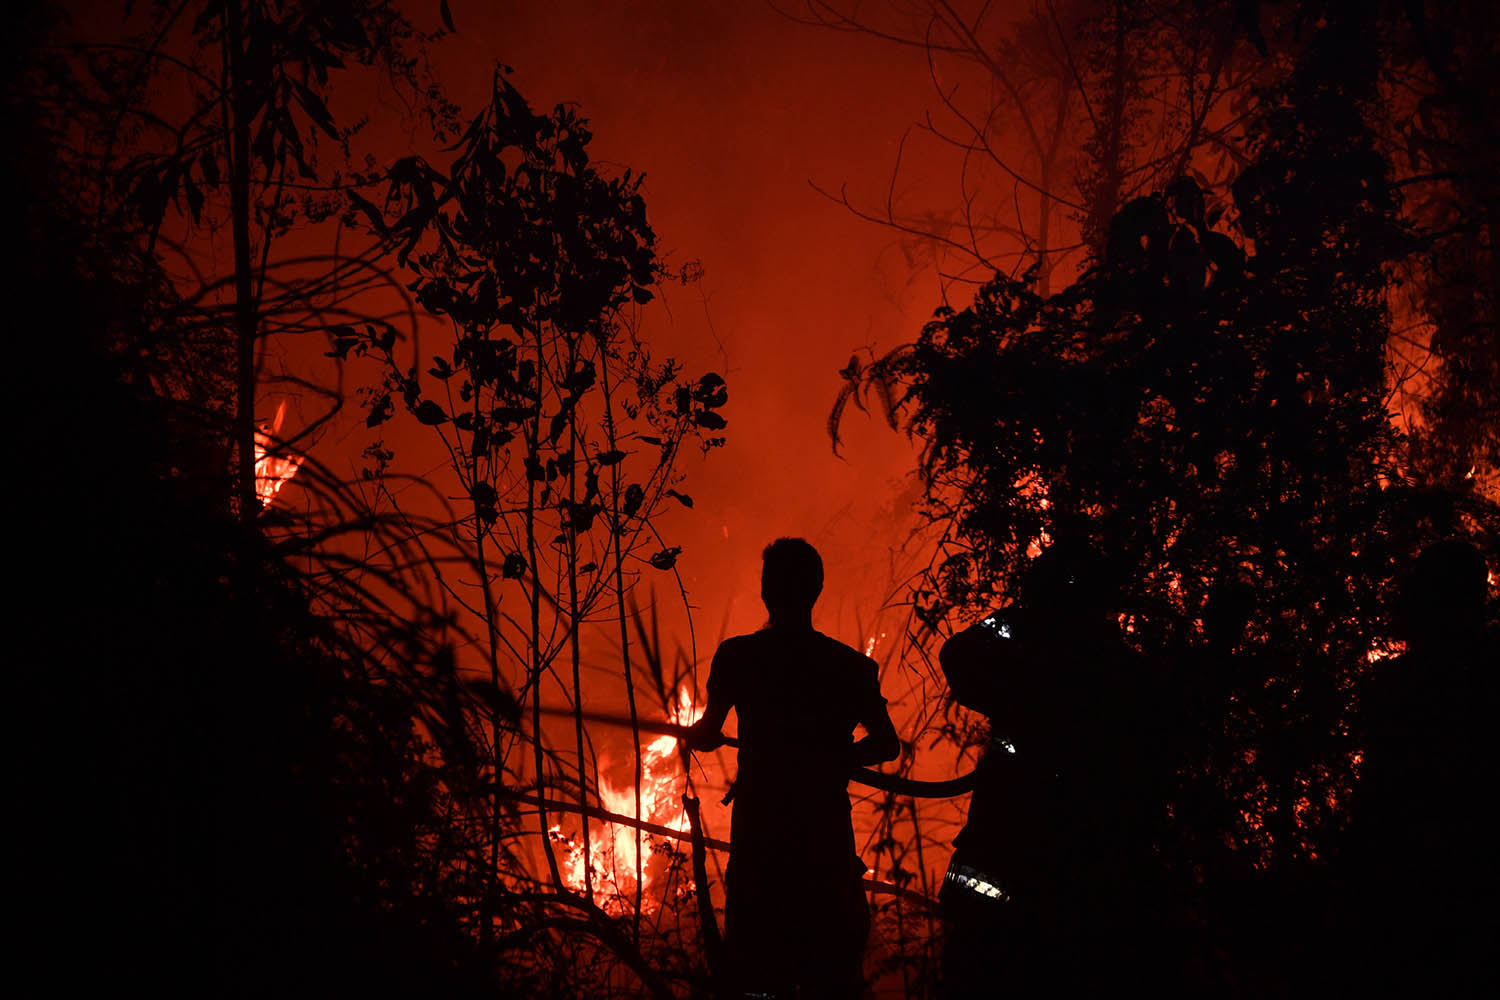 Indonesian firefighters extinguish a fire in Pekanbaru, Riau province, on Sept. 13 as the number of blazes in Indonesia's rainforests jumped sharply, adding to concerns about the impact of wildfire outbreaks worldwide on global warming.